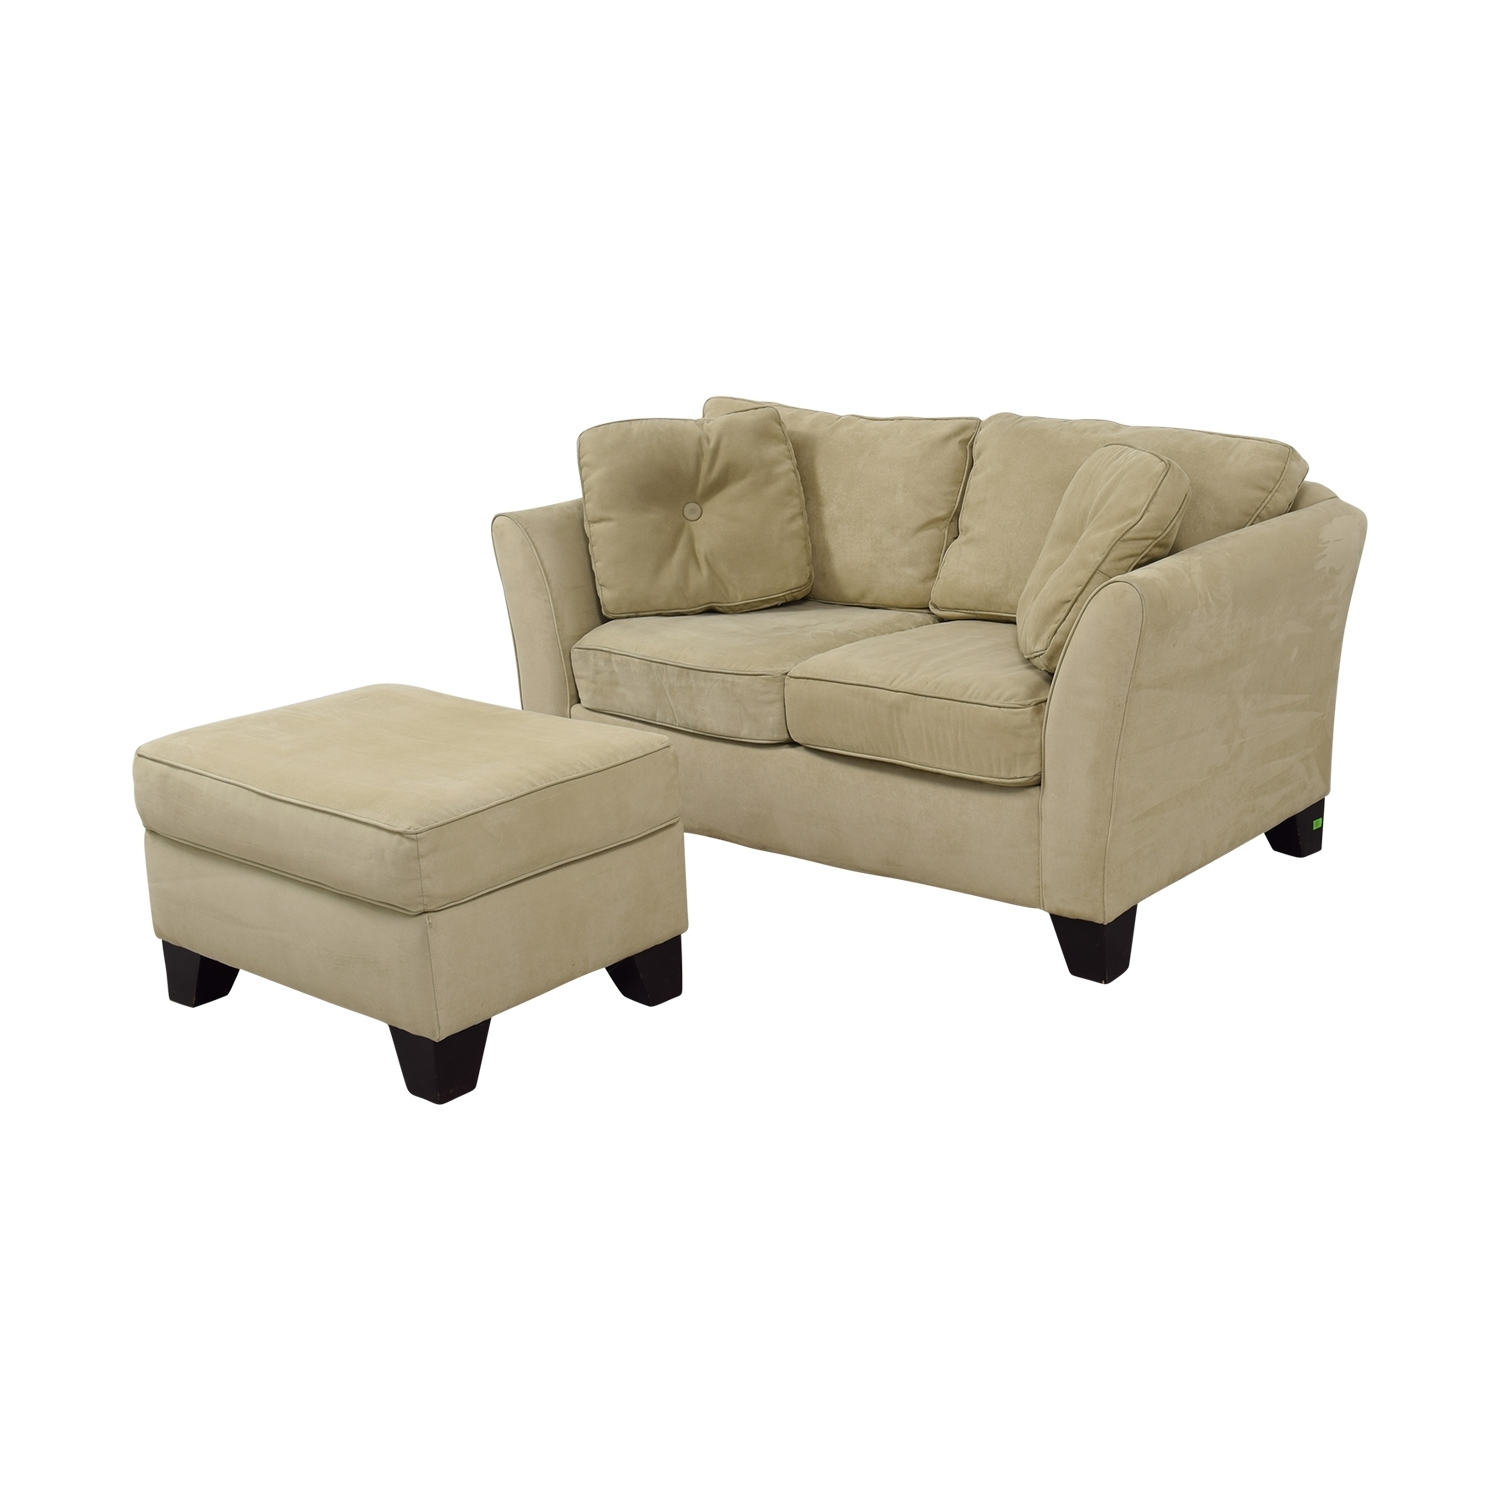 [%86% Off – Macy's Macy's Tan Loveseat With Ottoman / Sofas Intended For Most Current Loveseats With Ottoman|Loveseats With Ottoman Inside Popular 86% Off – Macy's Macy's Tan Loveseat With Ottoman / Sofas|Most Recently Released Loveseats With Ottoman Within 86% Off – Macy's Macy's Tan Loveseat With Ottoman / Sofas|Well Liked 86% Off – Macy's Macy's Tan Loveseat With Ottoman / Sofas For Loveseats With Ottoman%] (View 9 of 20)